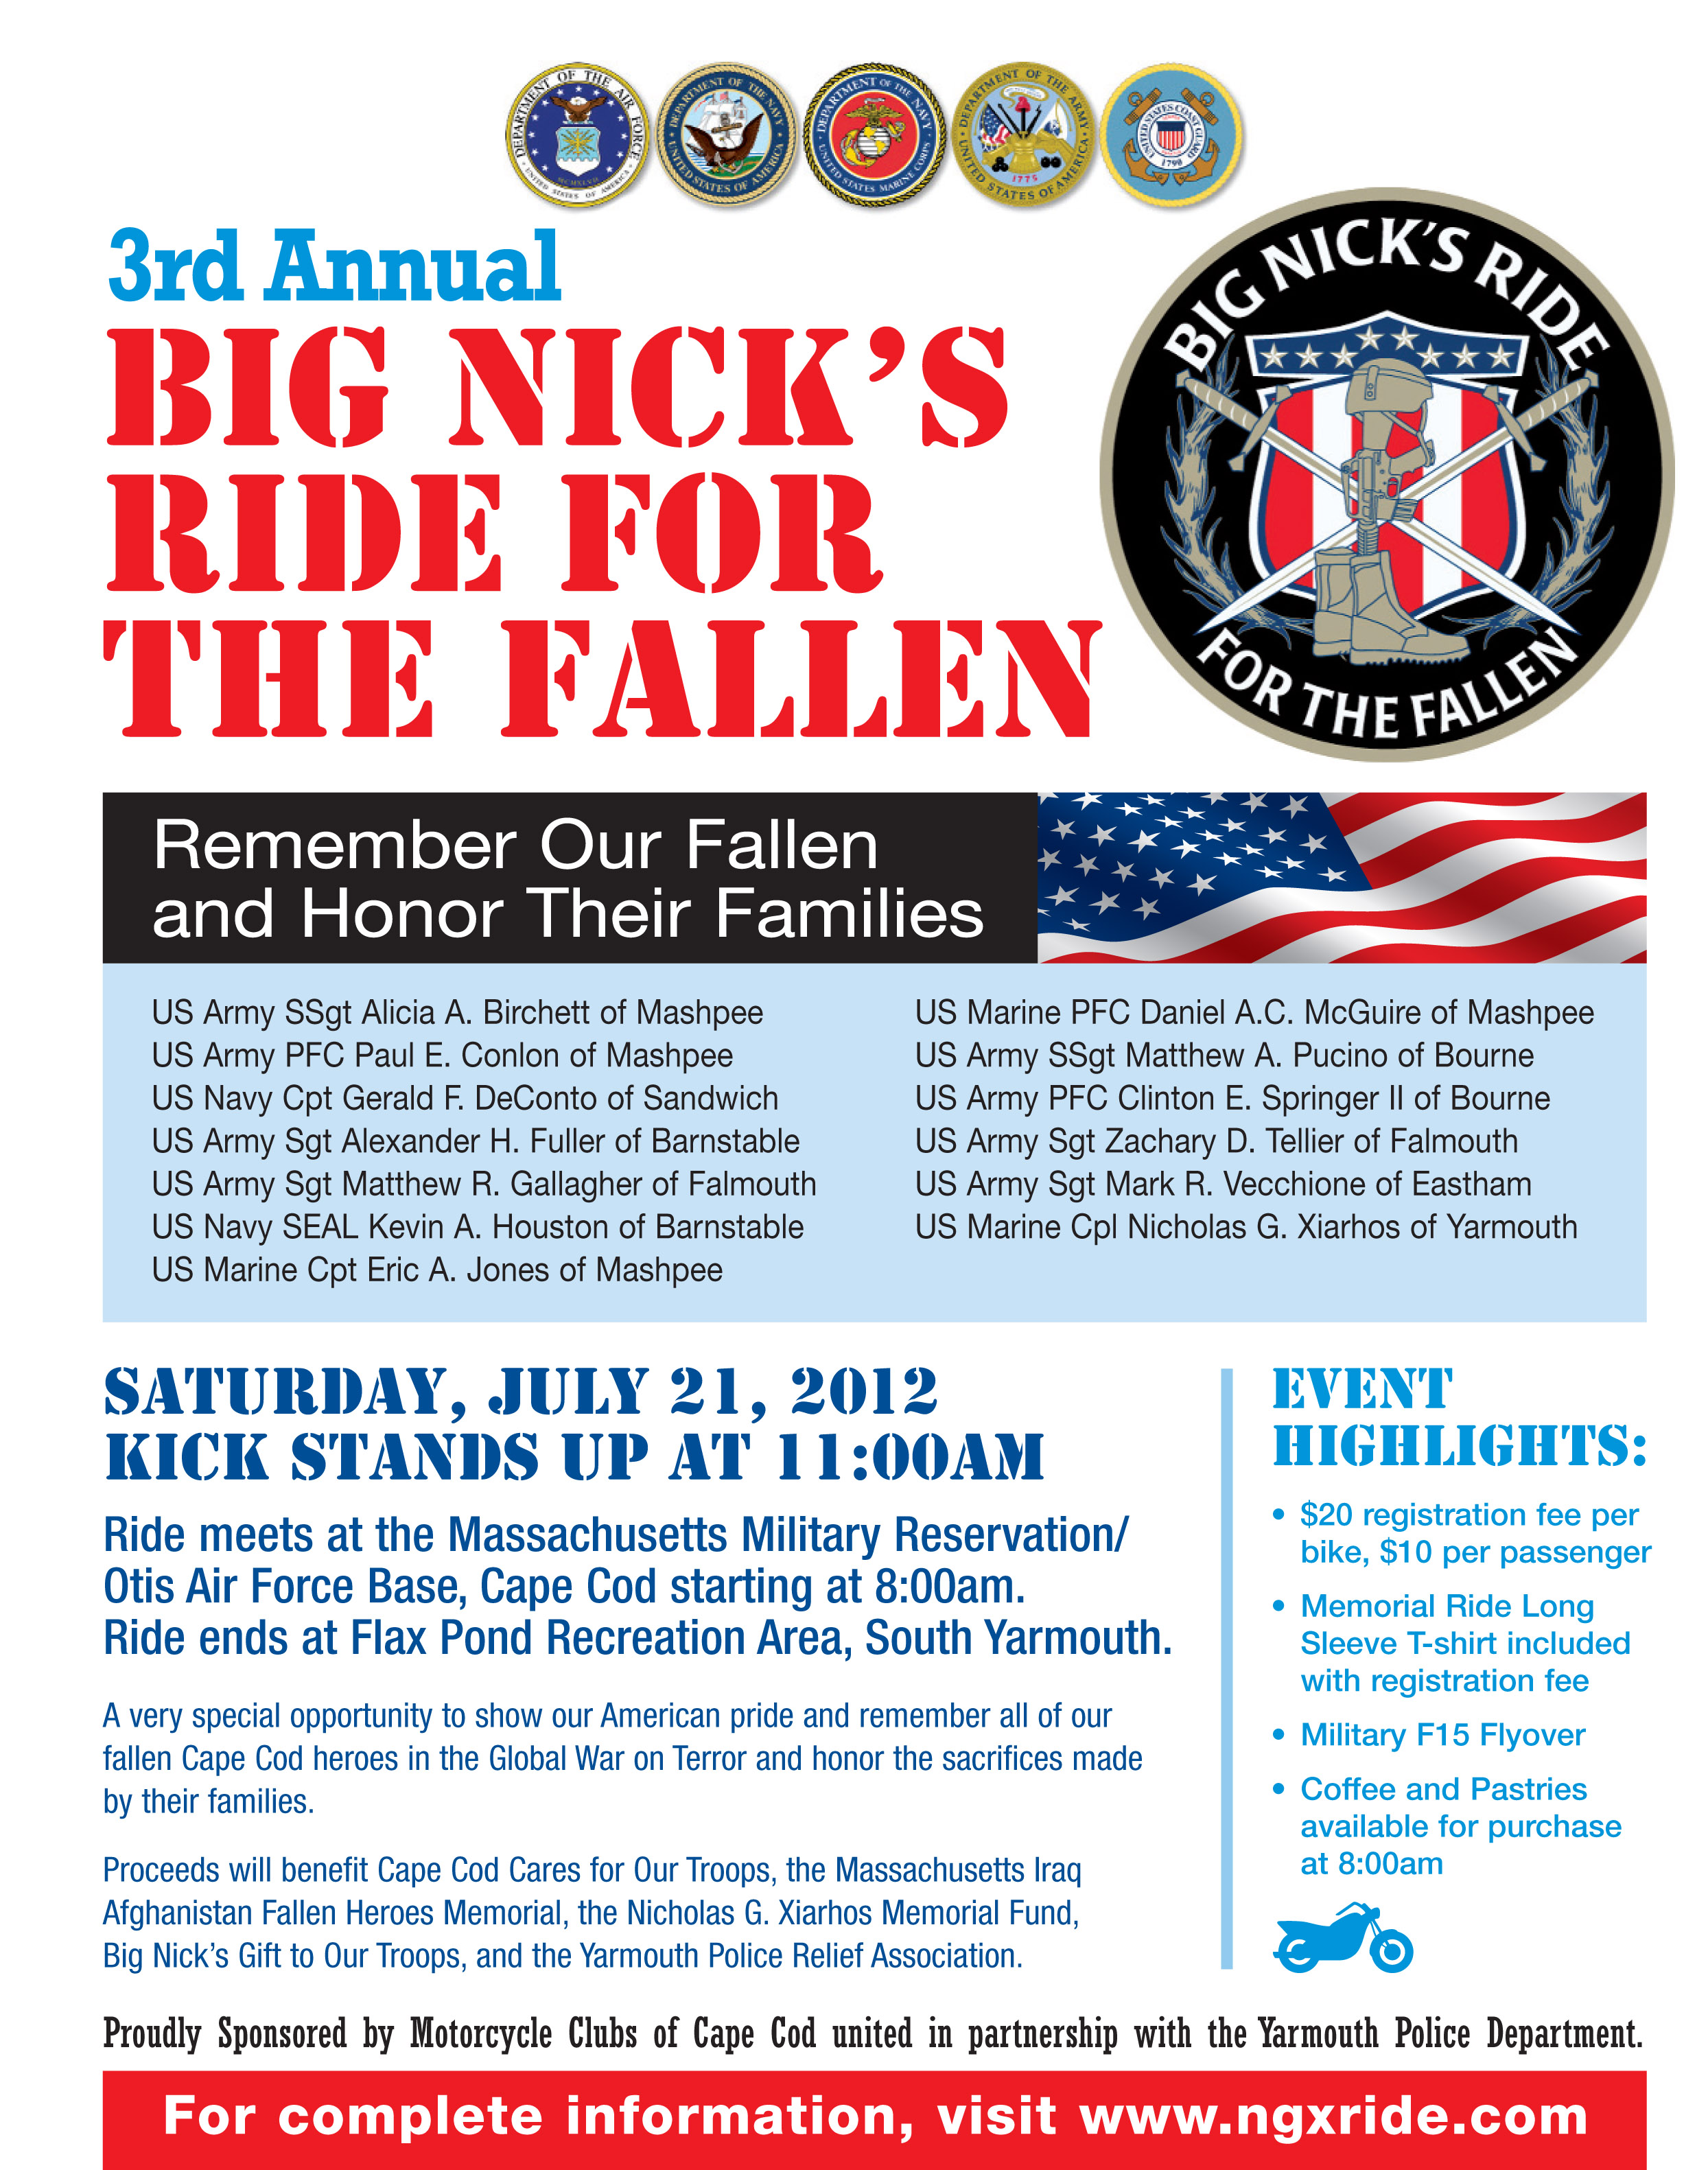 Big Nicks Ride flyer 2012